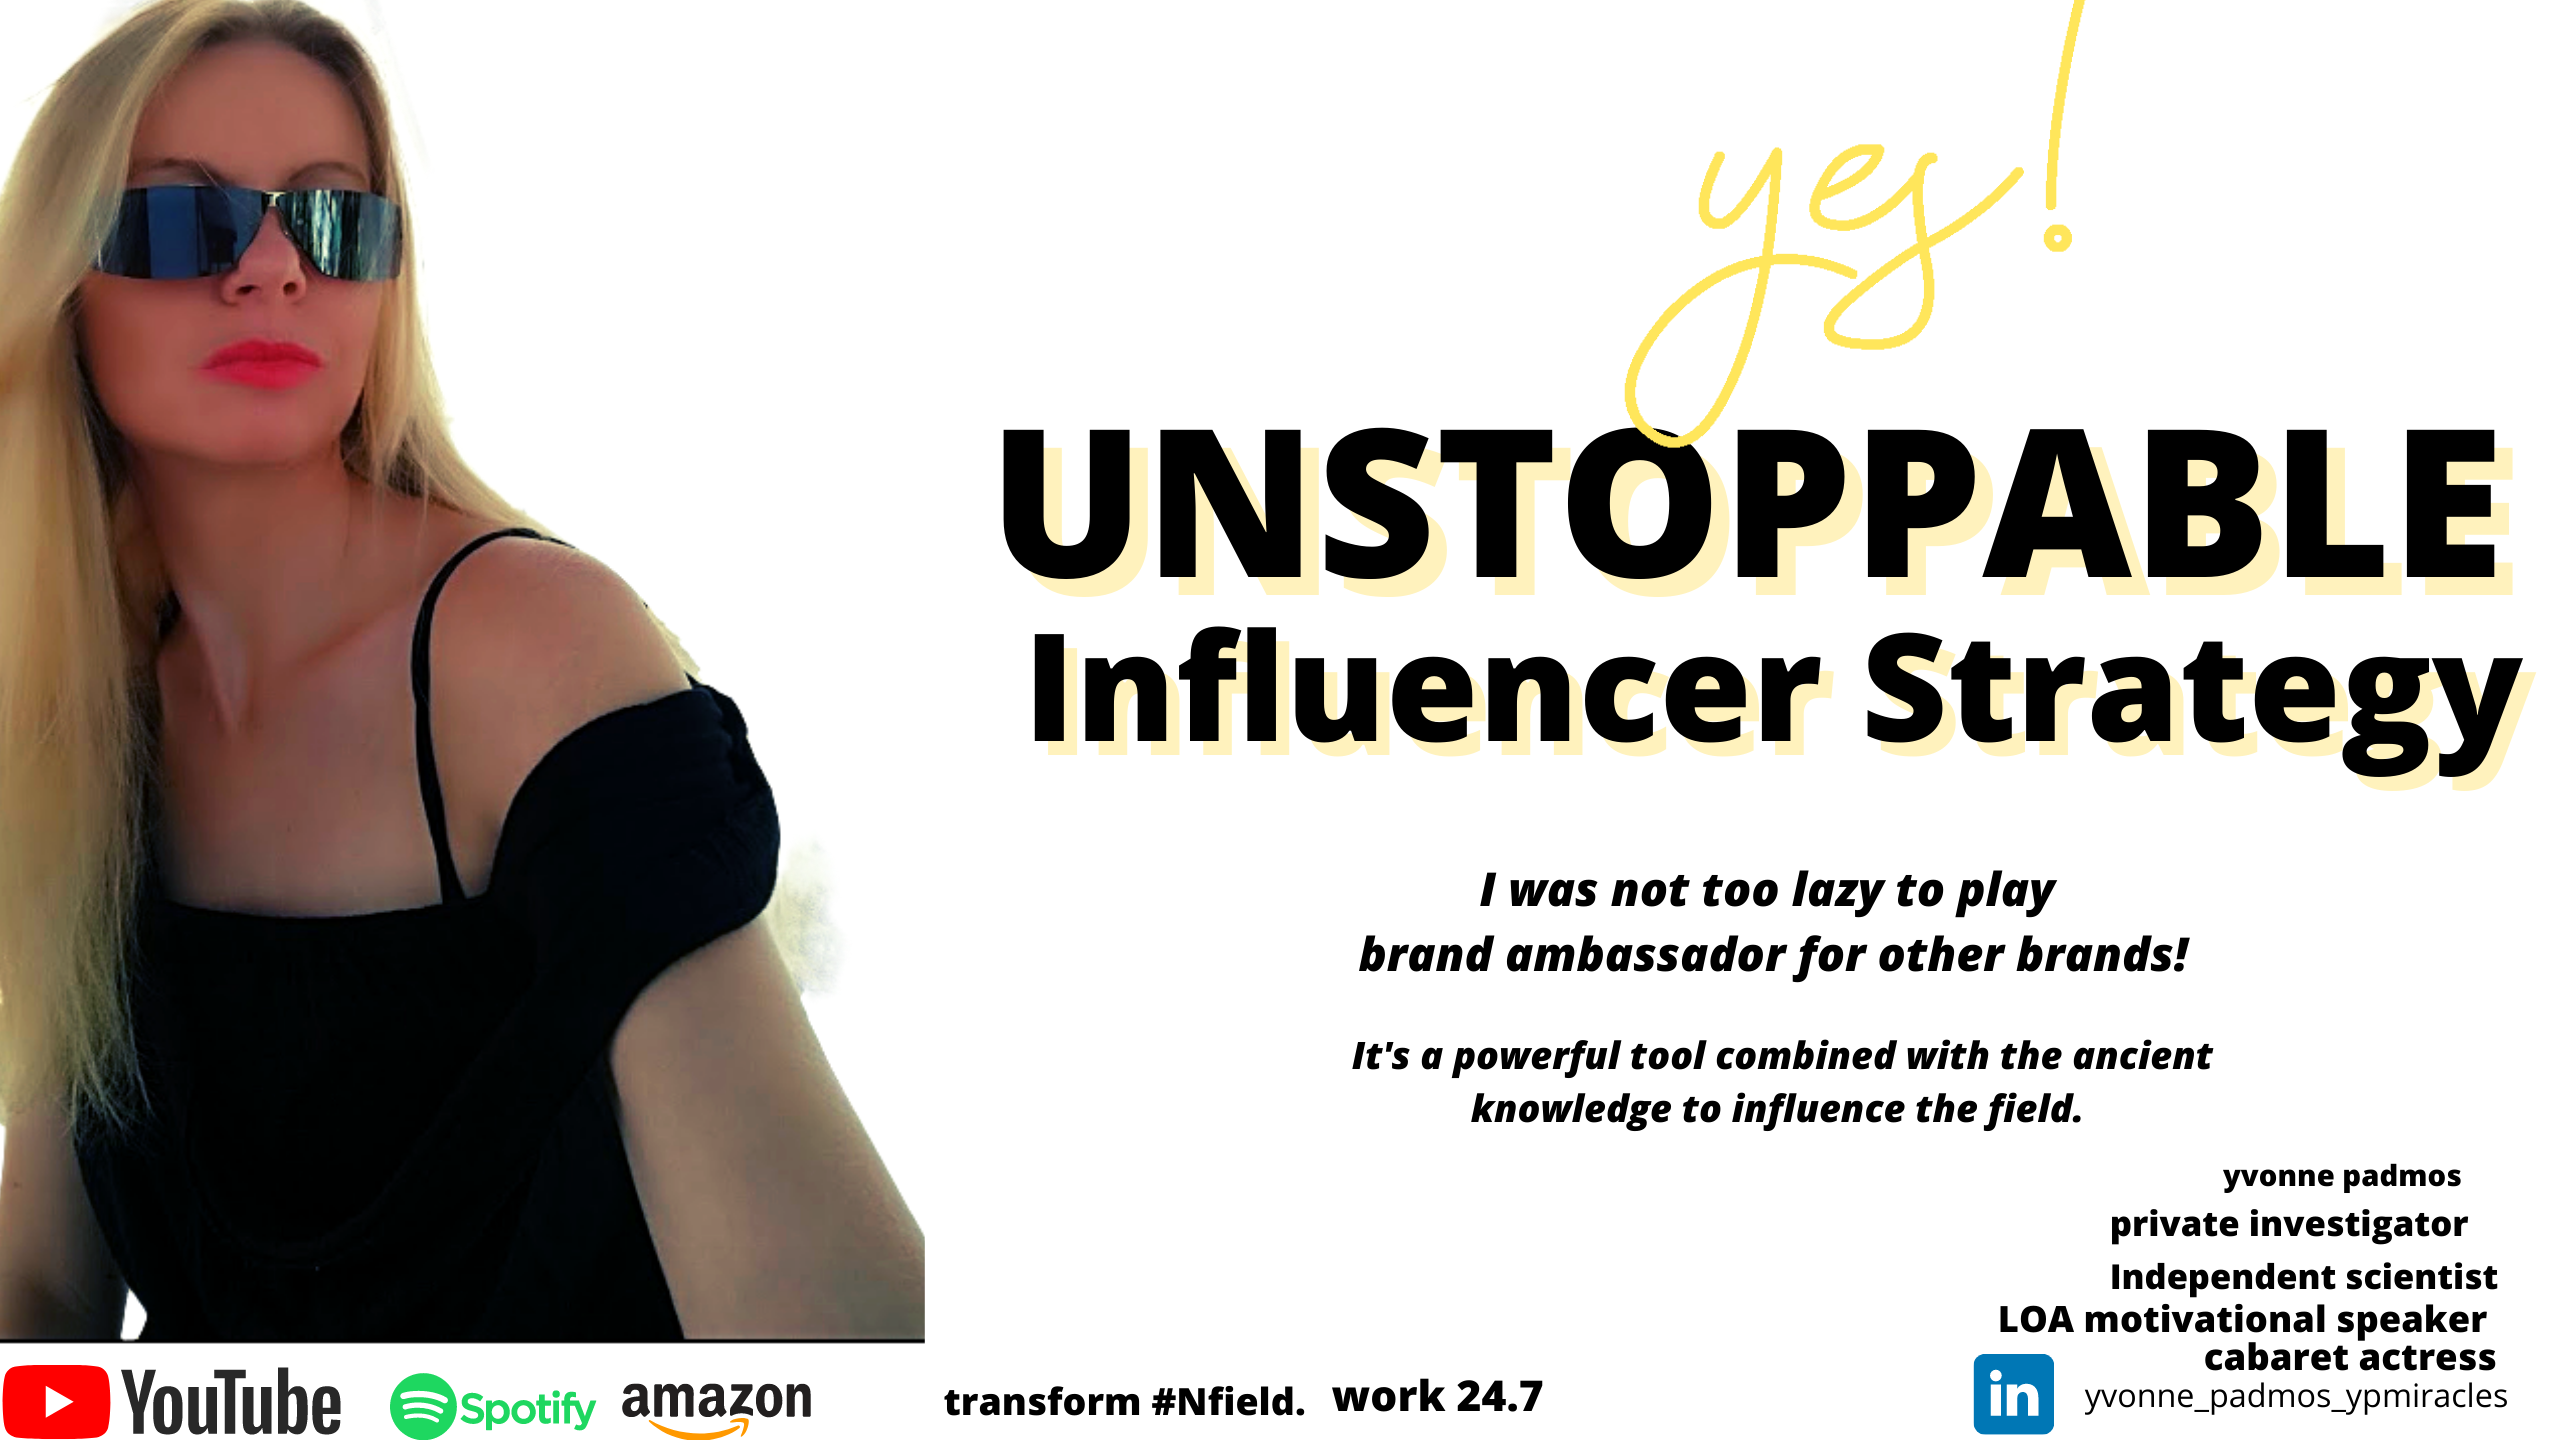 Unstoppable Influencer strategy